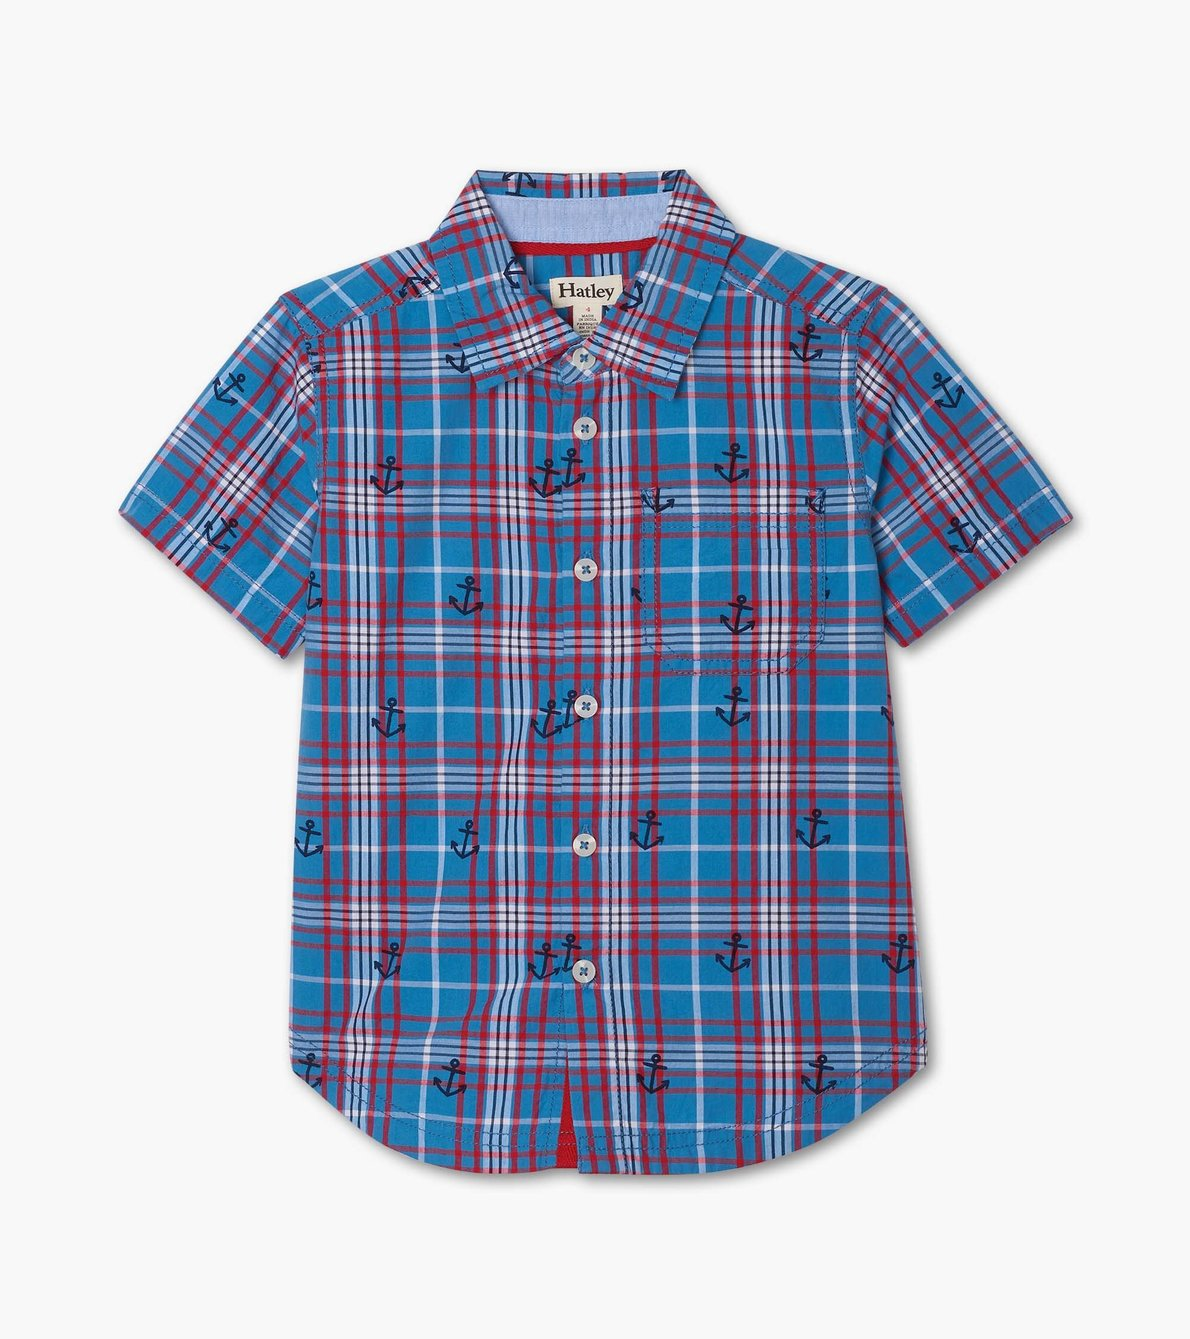 View larger image of Blue Plaid Short Sleeve Button Down Shirt